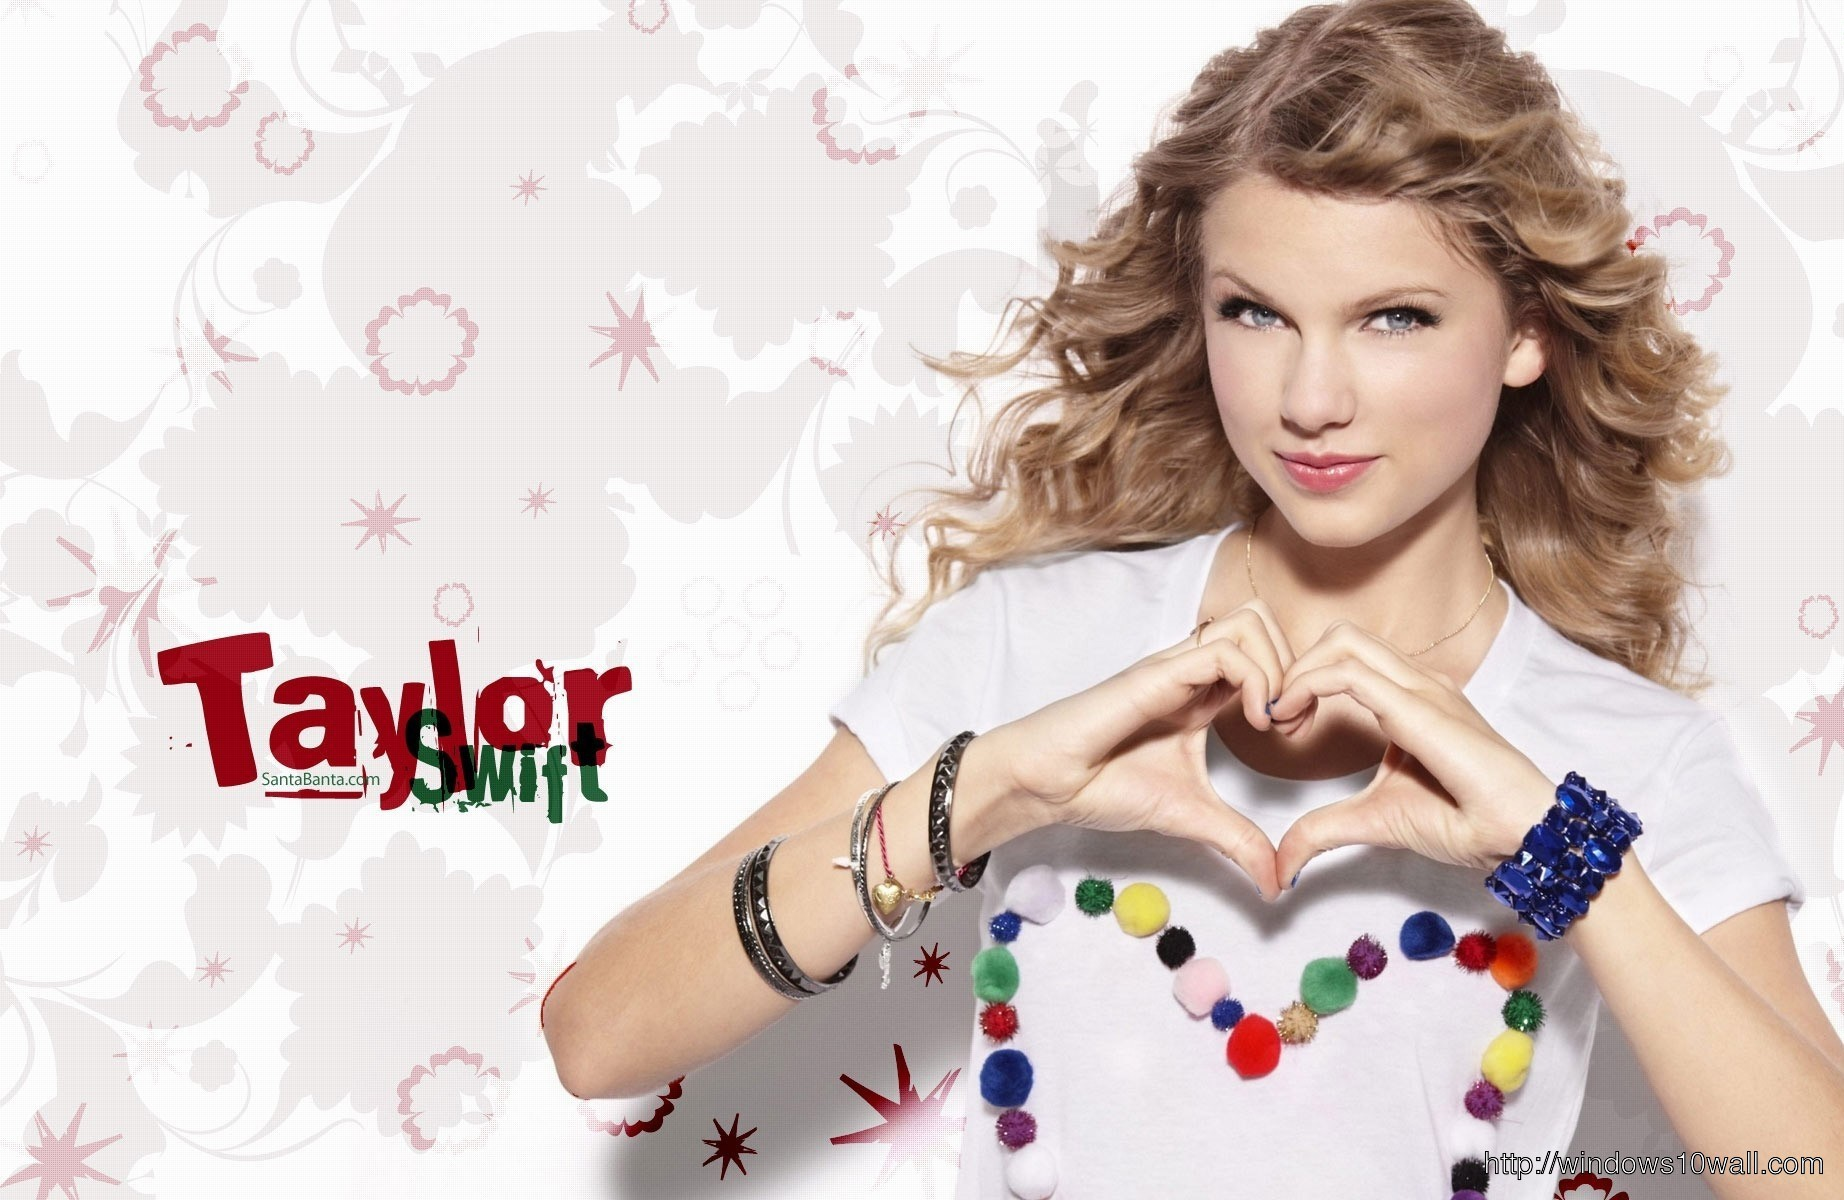 taylor-swift-wallpaper-download